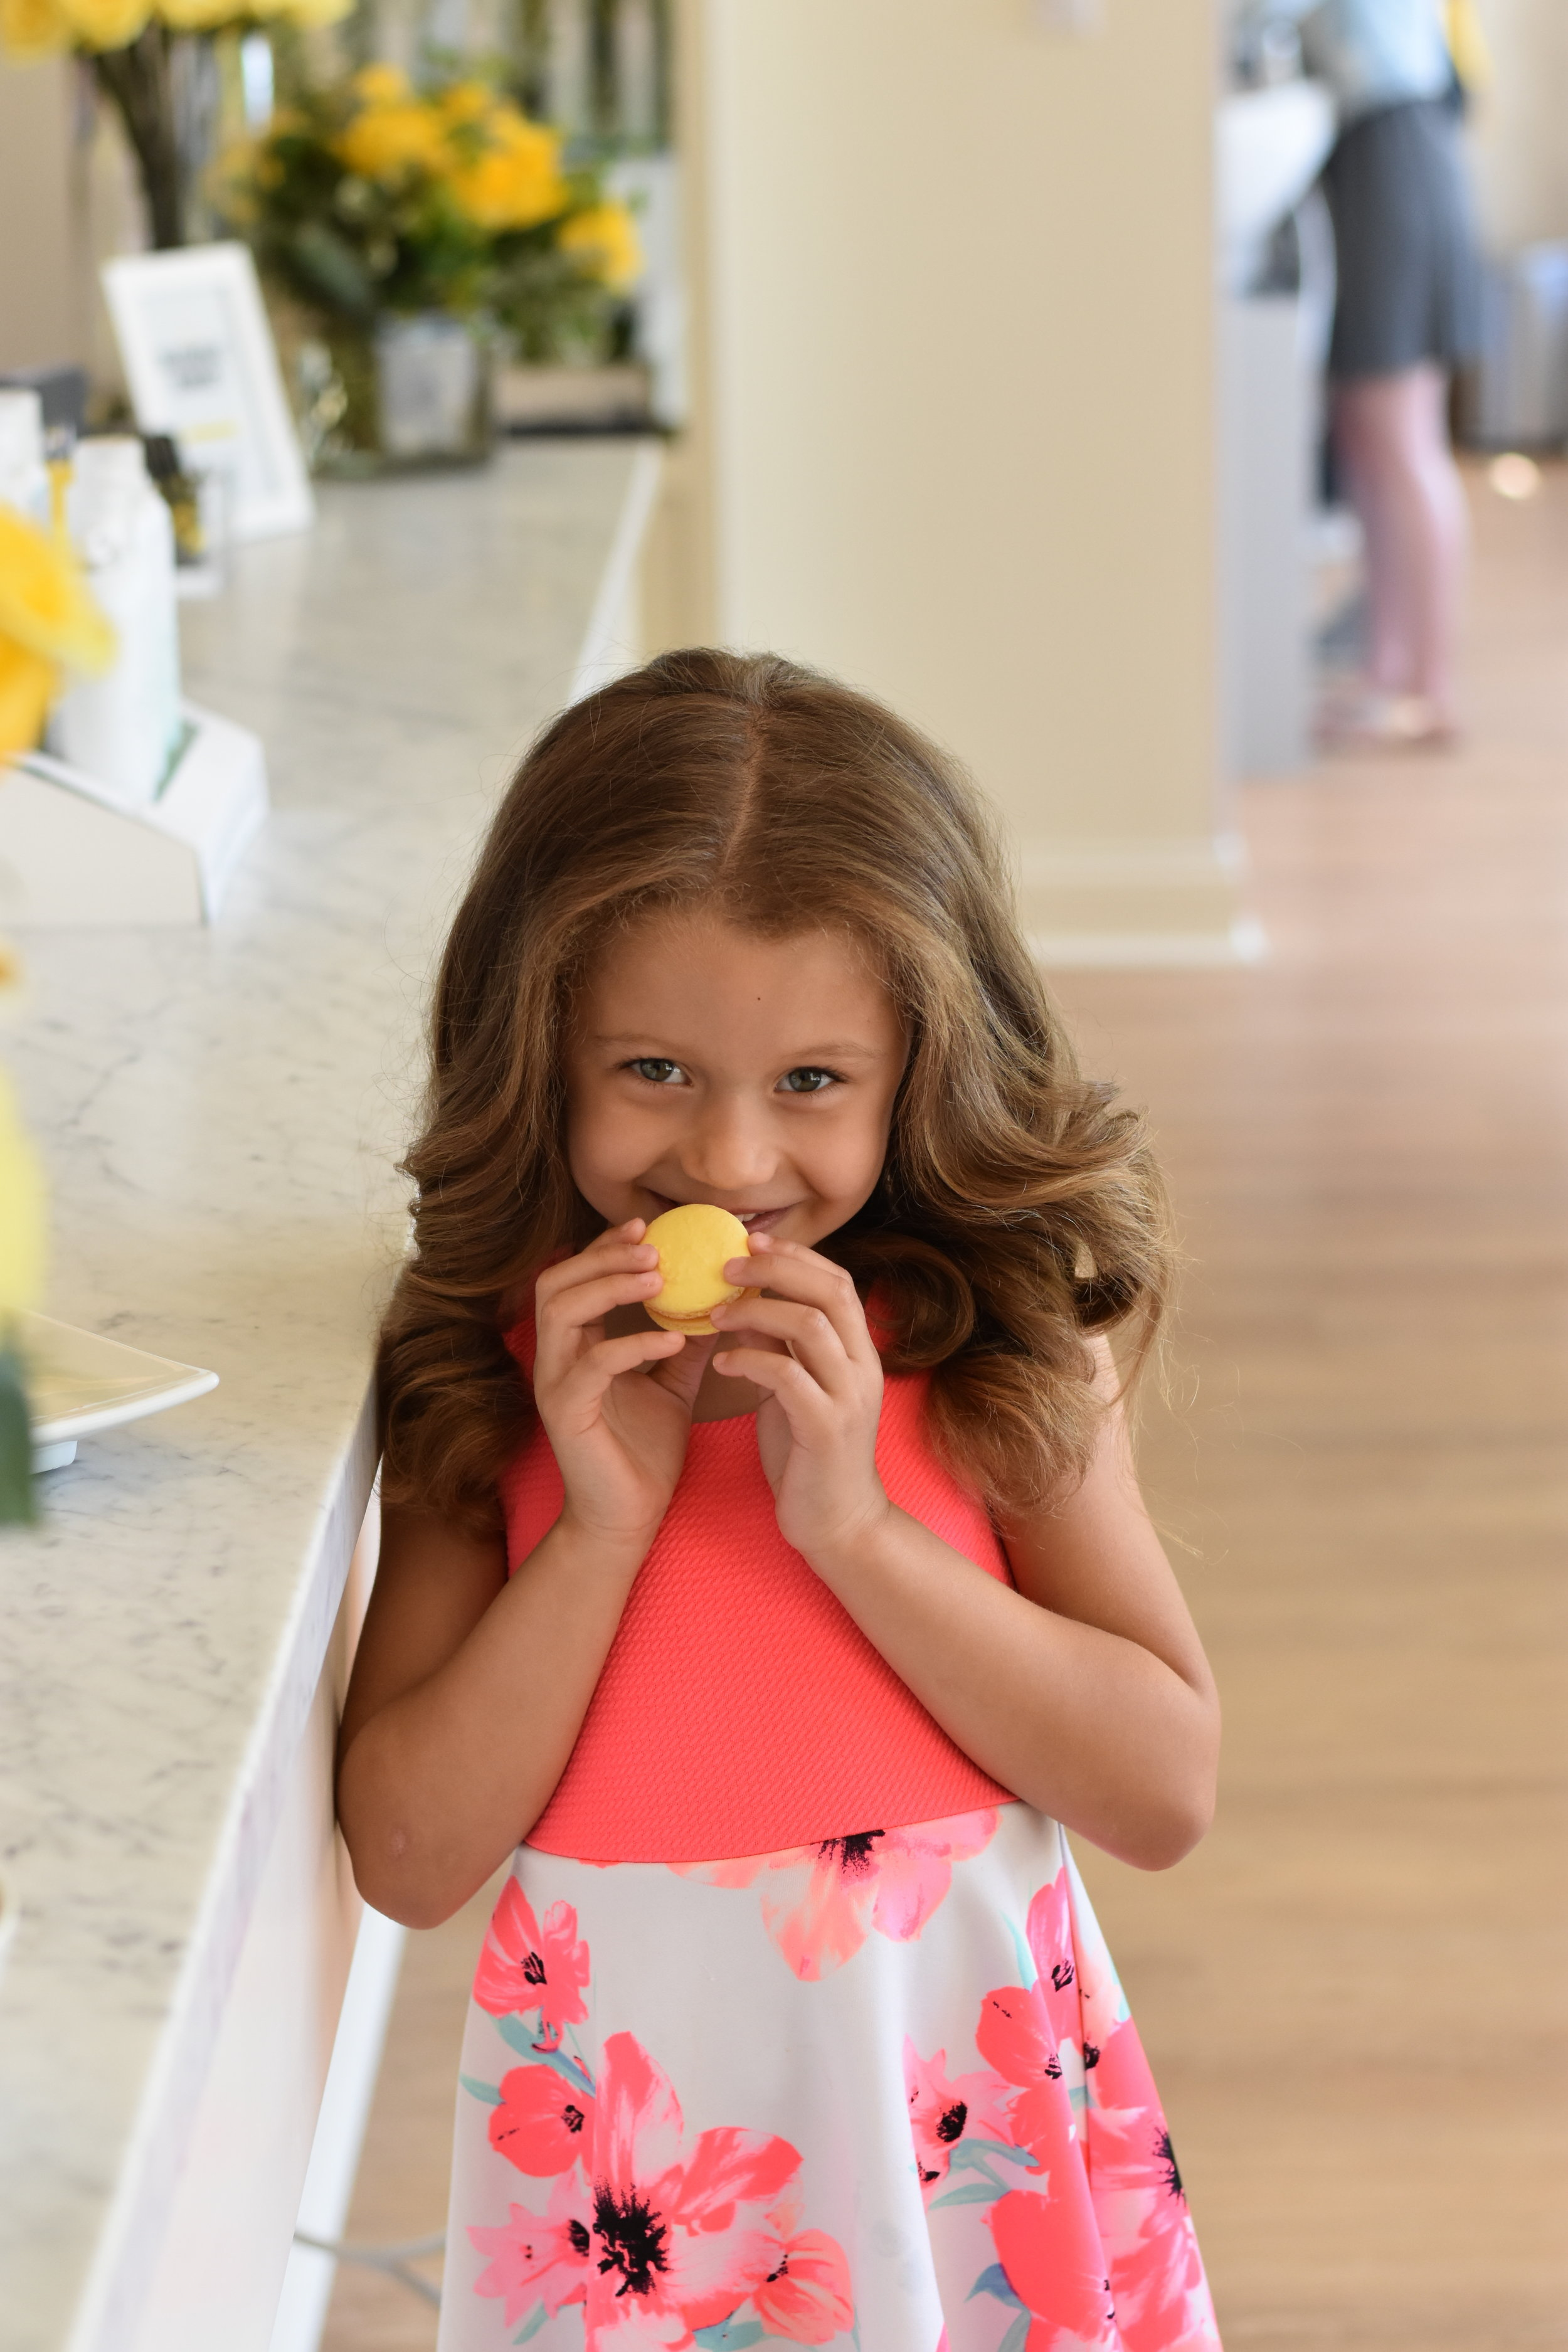 Image of little girl with a new blowout style from DryBar in Indianapolis.